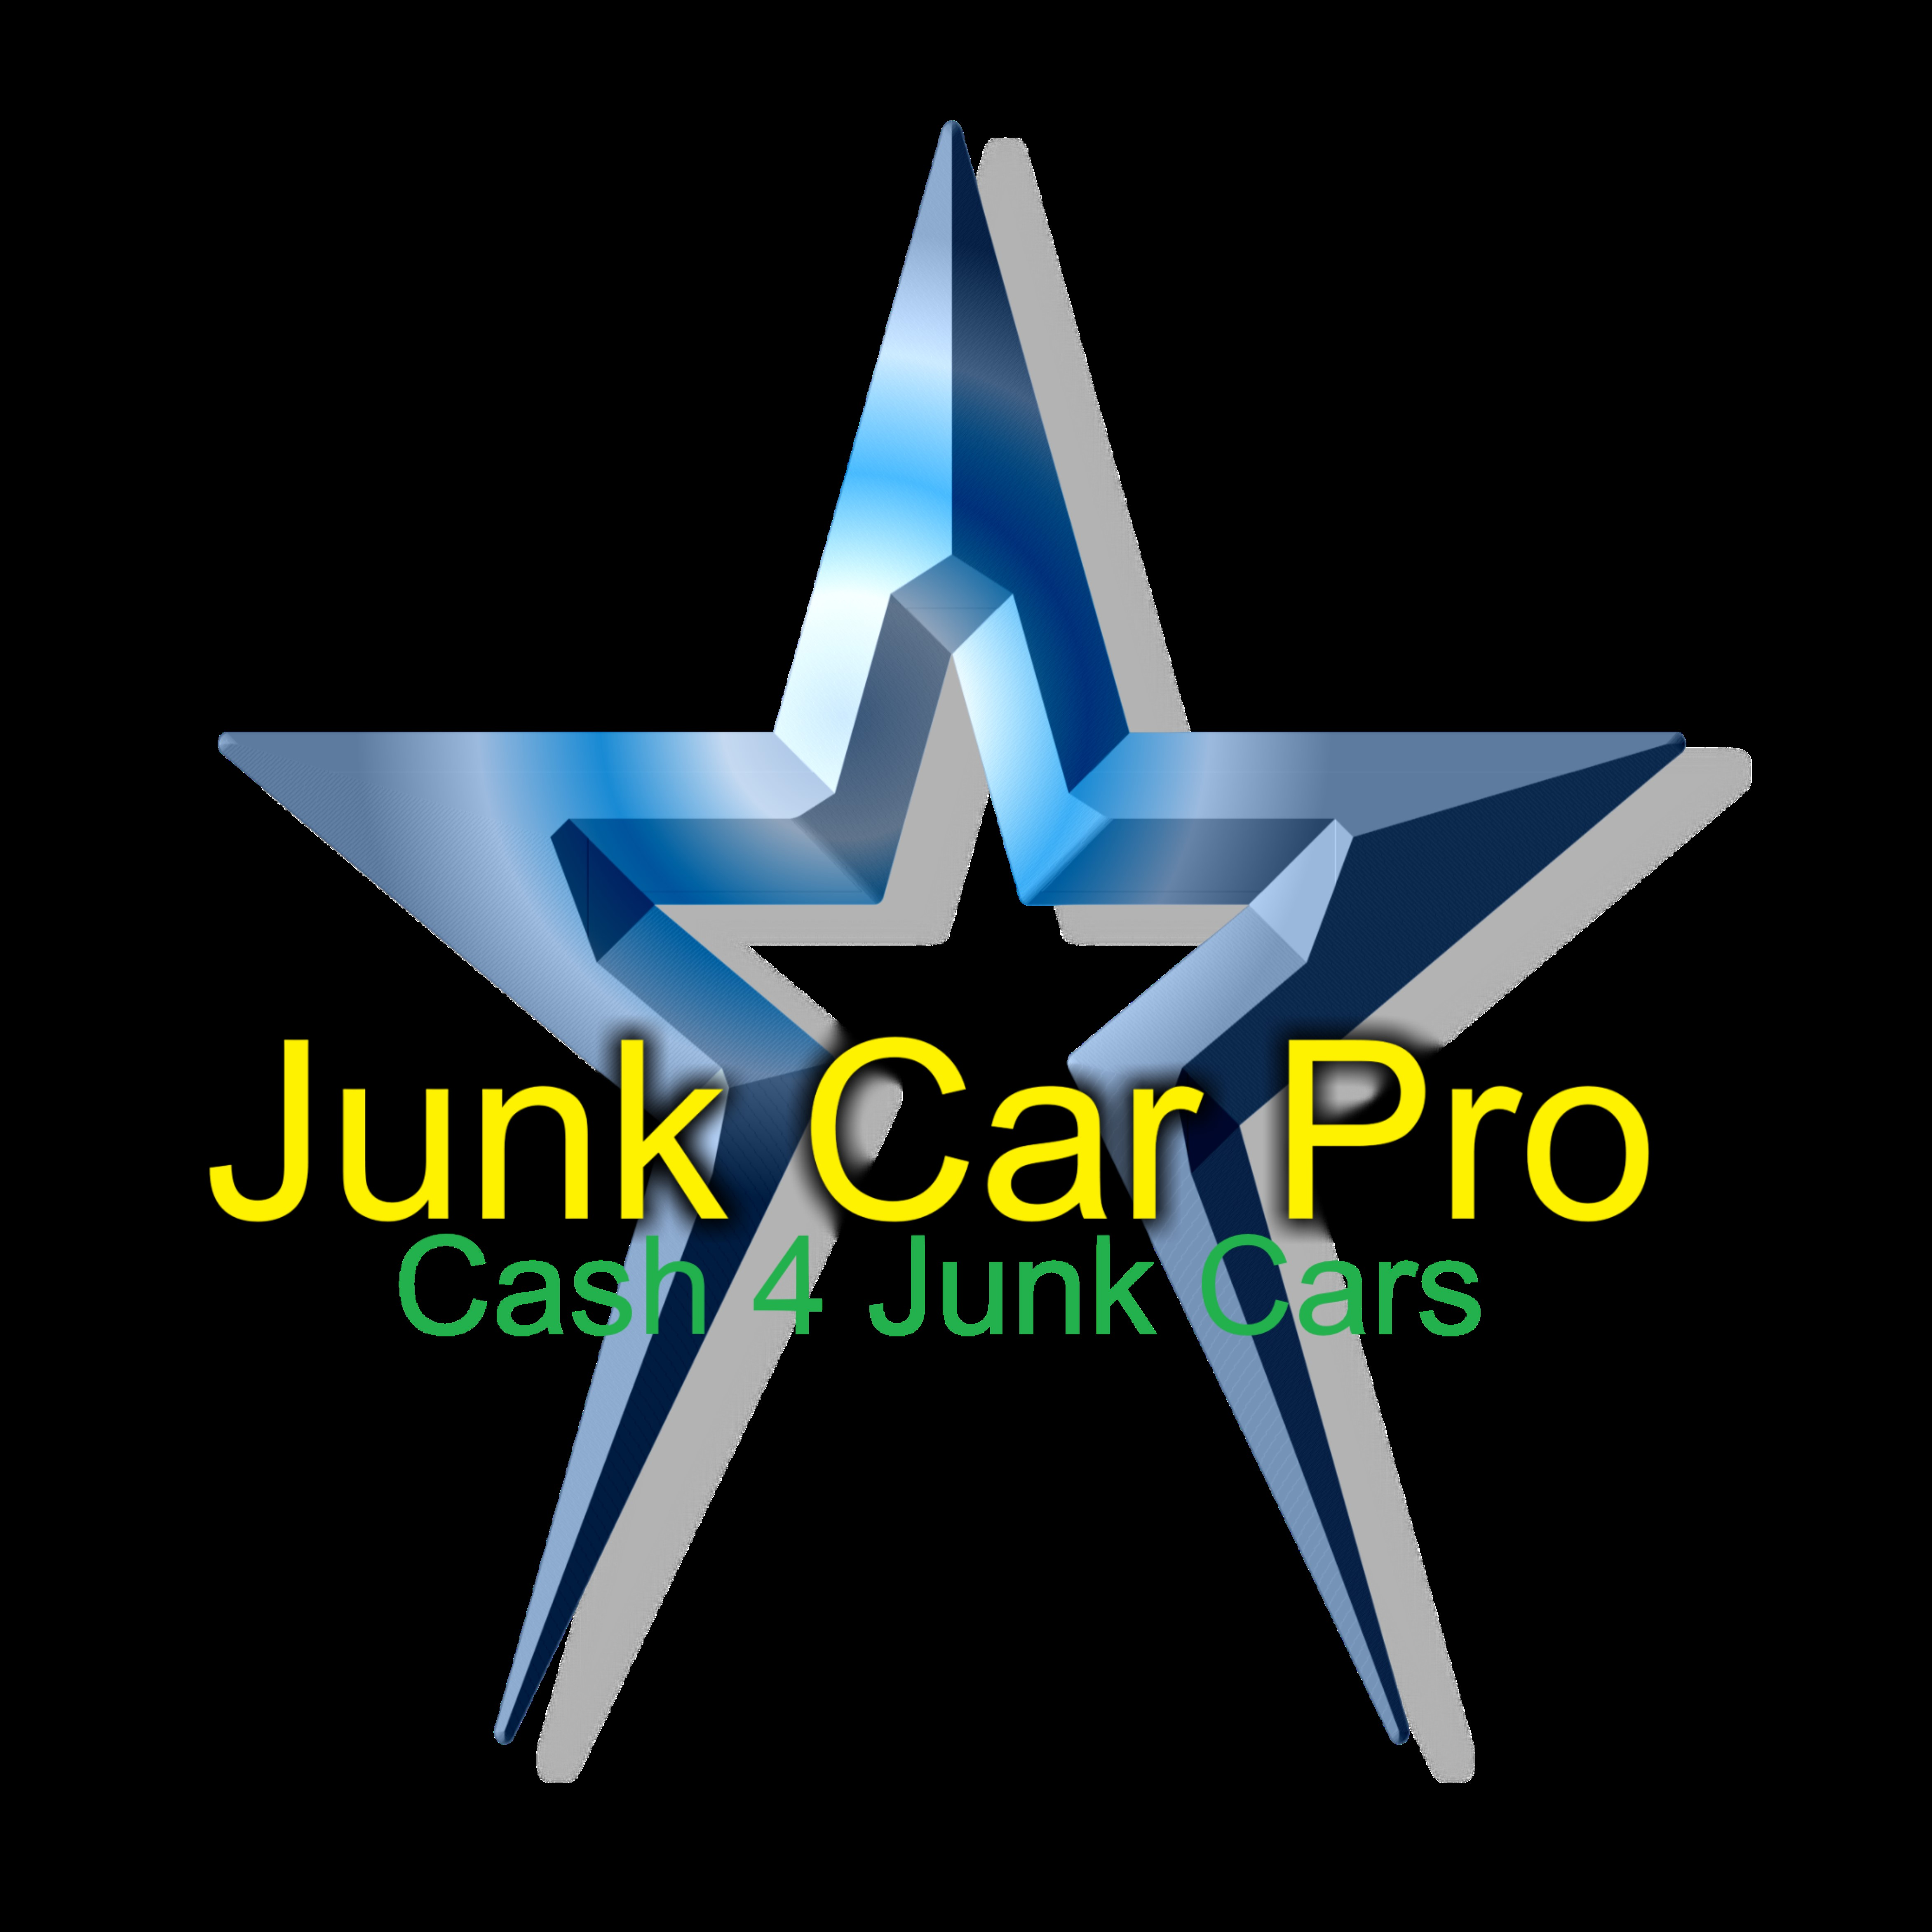 Junk Car Pro- Cash 4 Junk Cars